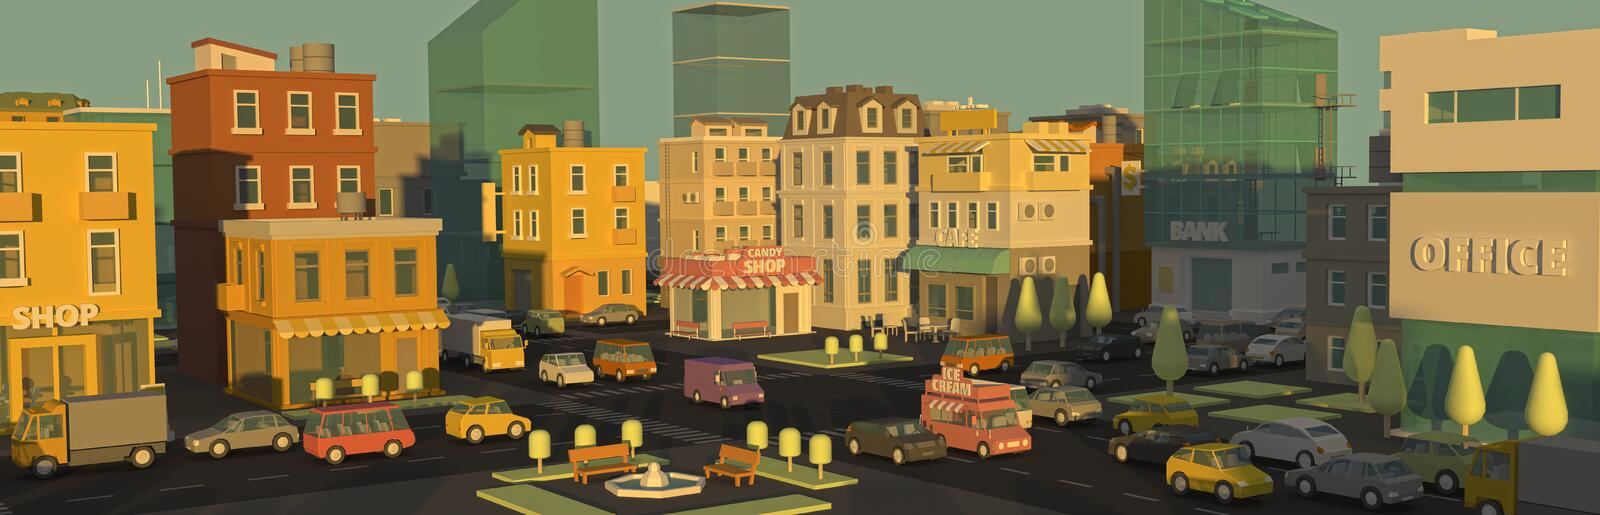 Banner cartoon street panorama city 3d. Outdoor advertising daylight. Very high detail. Cars end buildings. Place for. Text. Template color illustration royalty free stock photos